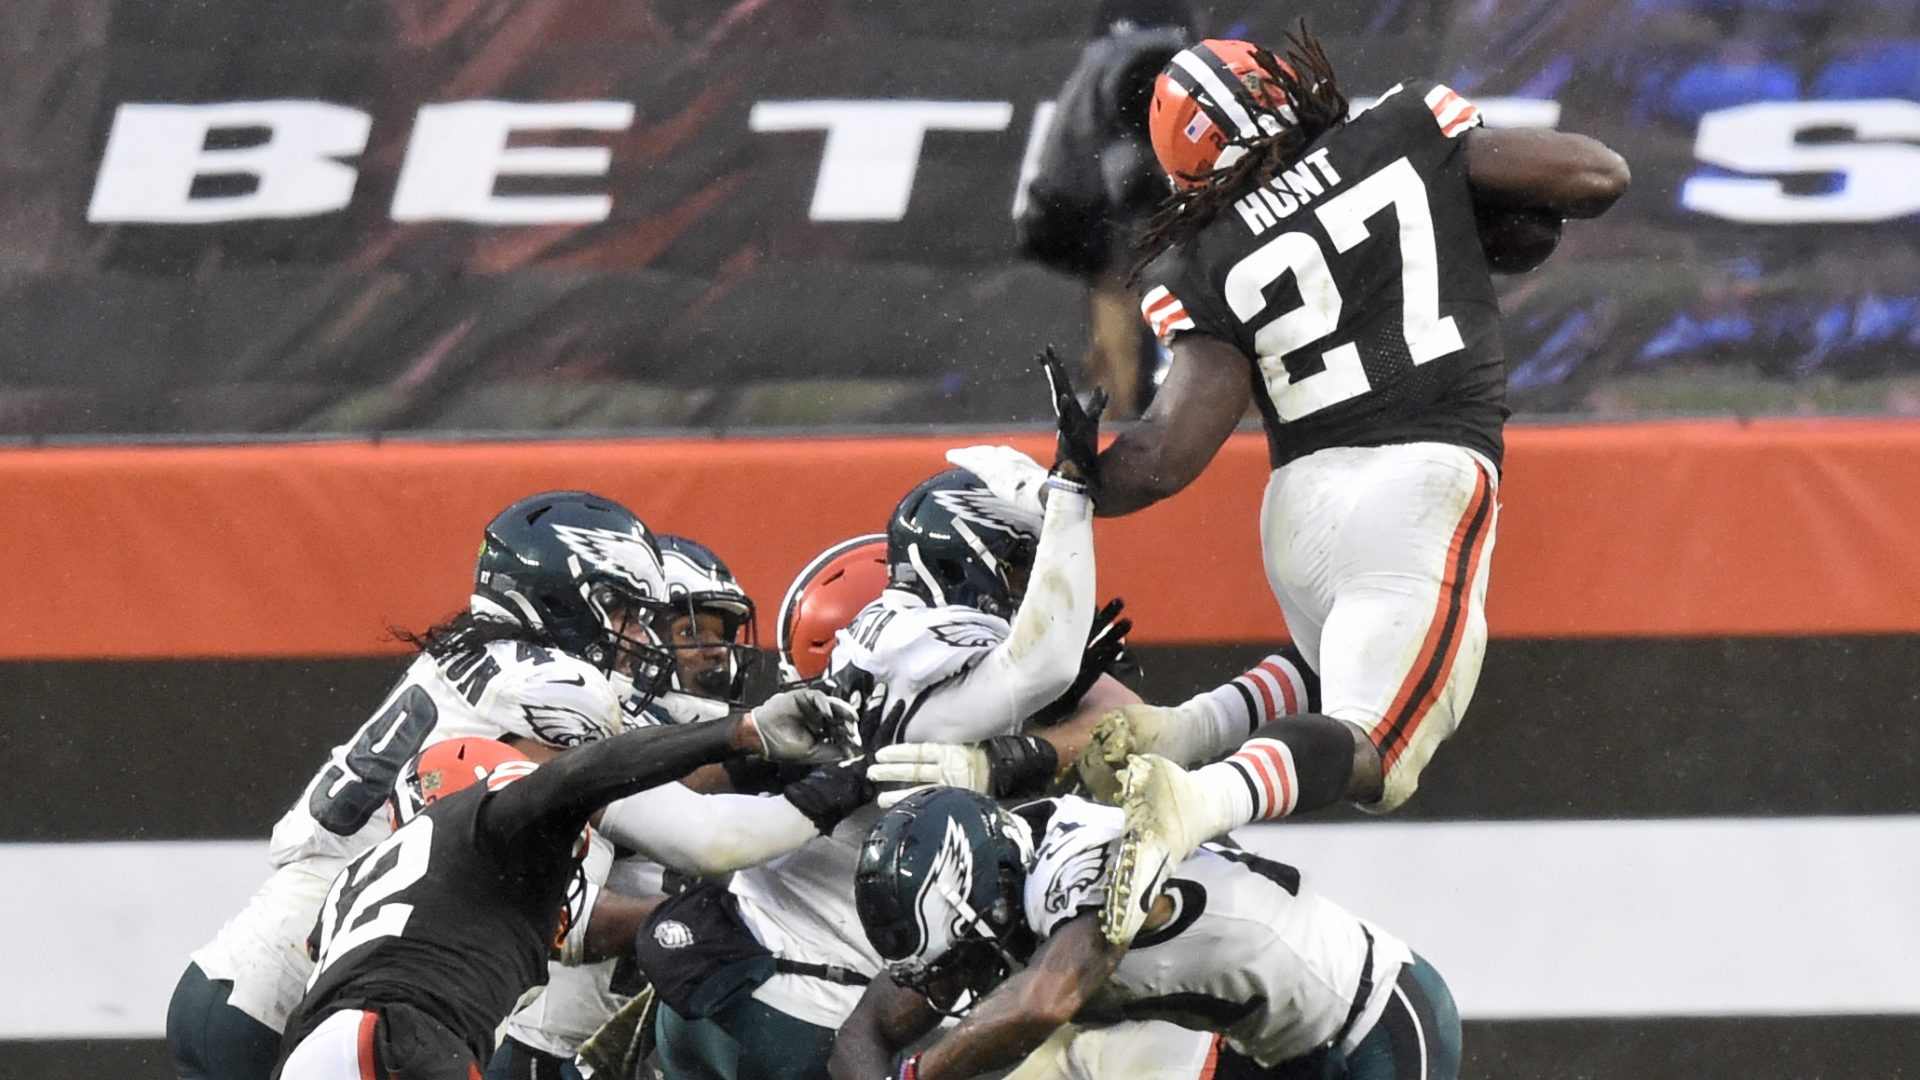 Cleveland Browns running back Kareem Hunt (27) rushes for a five-yard touchdown during the second half of an NFL football game against the Philadelphia Eagles, Sunday, Nov. 22, 2020, in Cleveland. The Browns won 22-17.